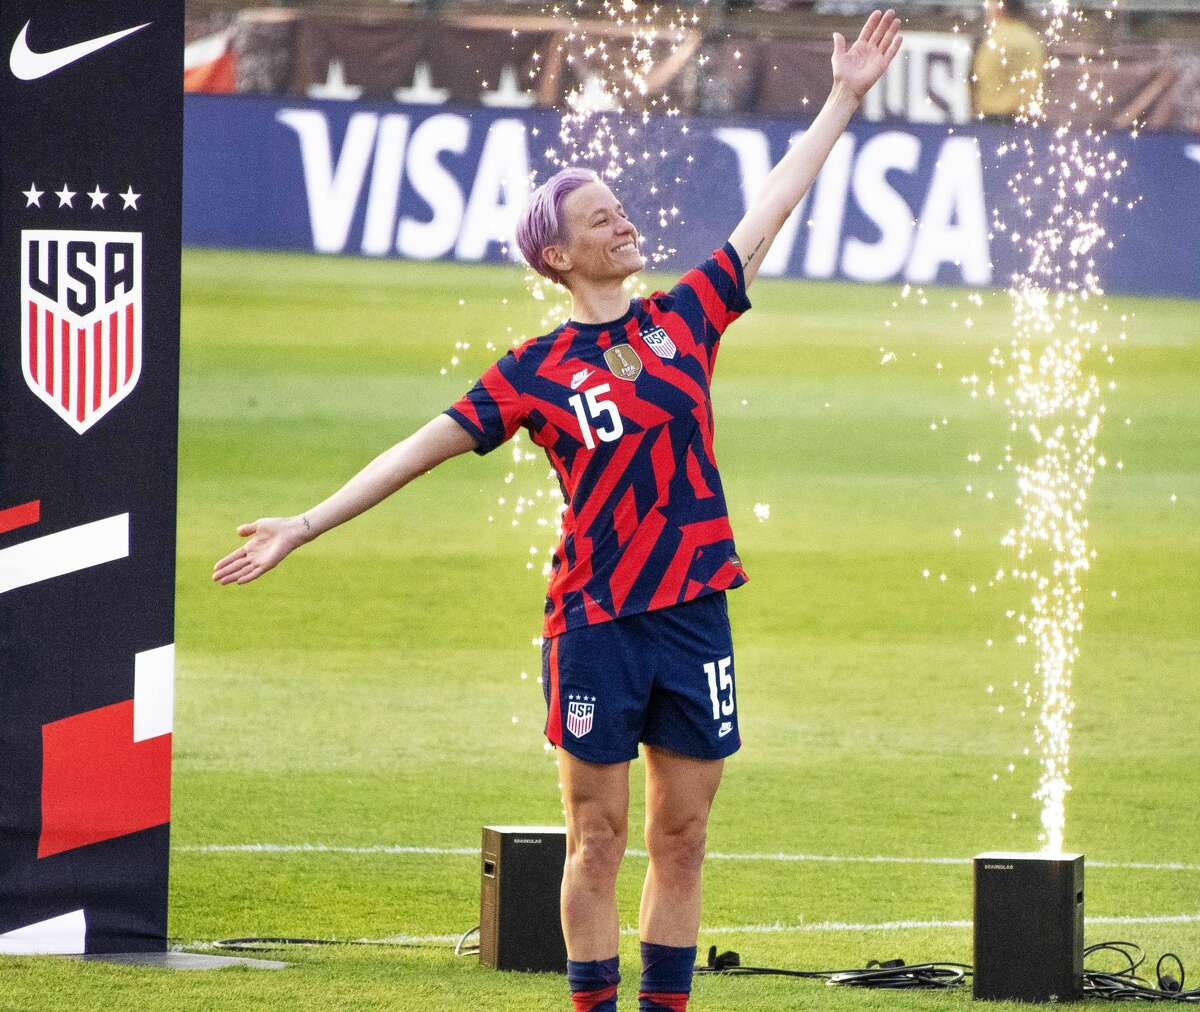 Megan Rapinoe of the US Women's Soccer National Team during a Send-Off ceremony at Pratt & Whitney Stadium in East Hartford, Conn. after a match against Mexico on Monday, July 5, 2021. The U.S. won 4-0 over Mexico. (Joyce Bassett / Special to the Times Union)